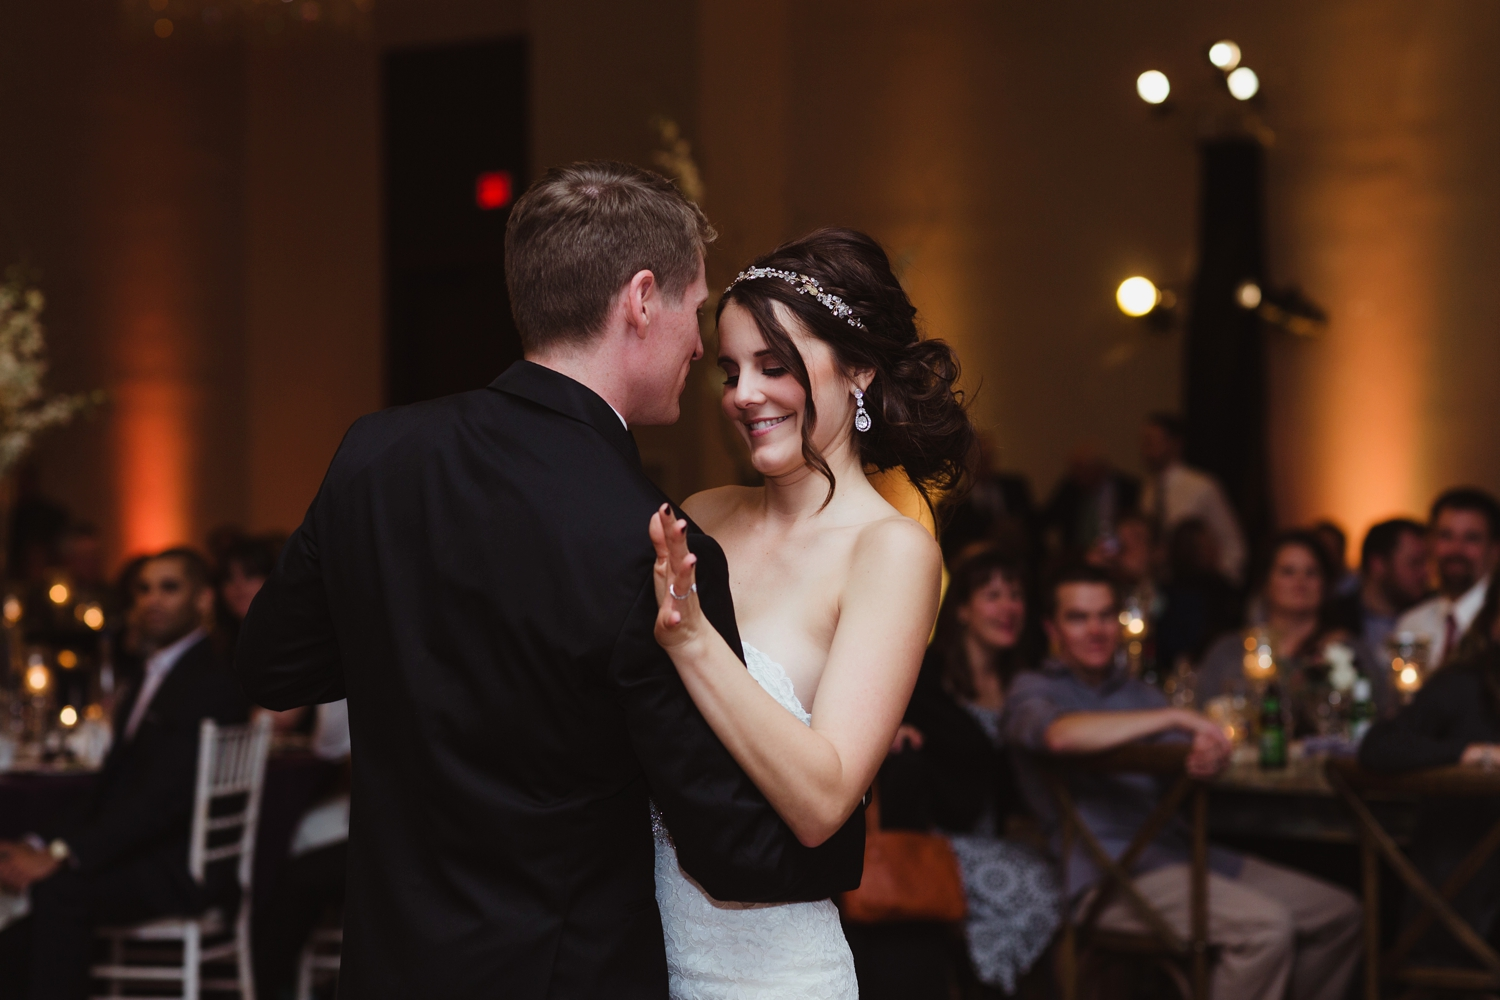 bride and groom dancing at wedding in peoria